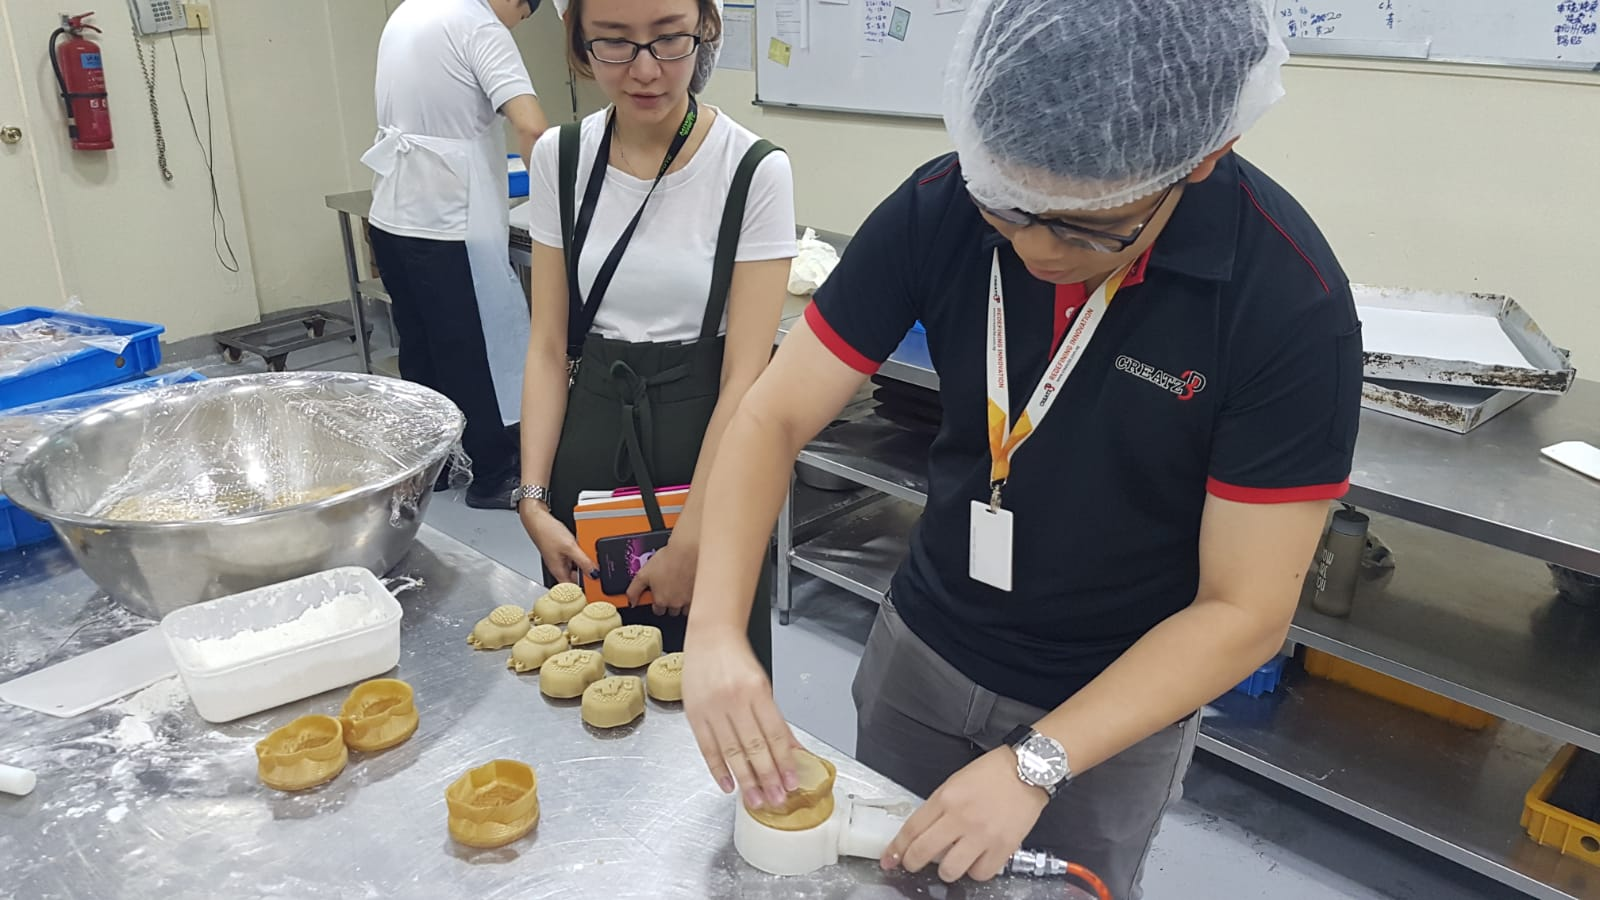 Ms. Nijie and Mr. Zhisheng having a go at making mooncakes with 3D printed molds.